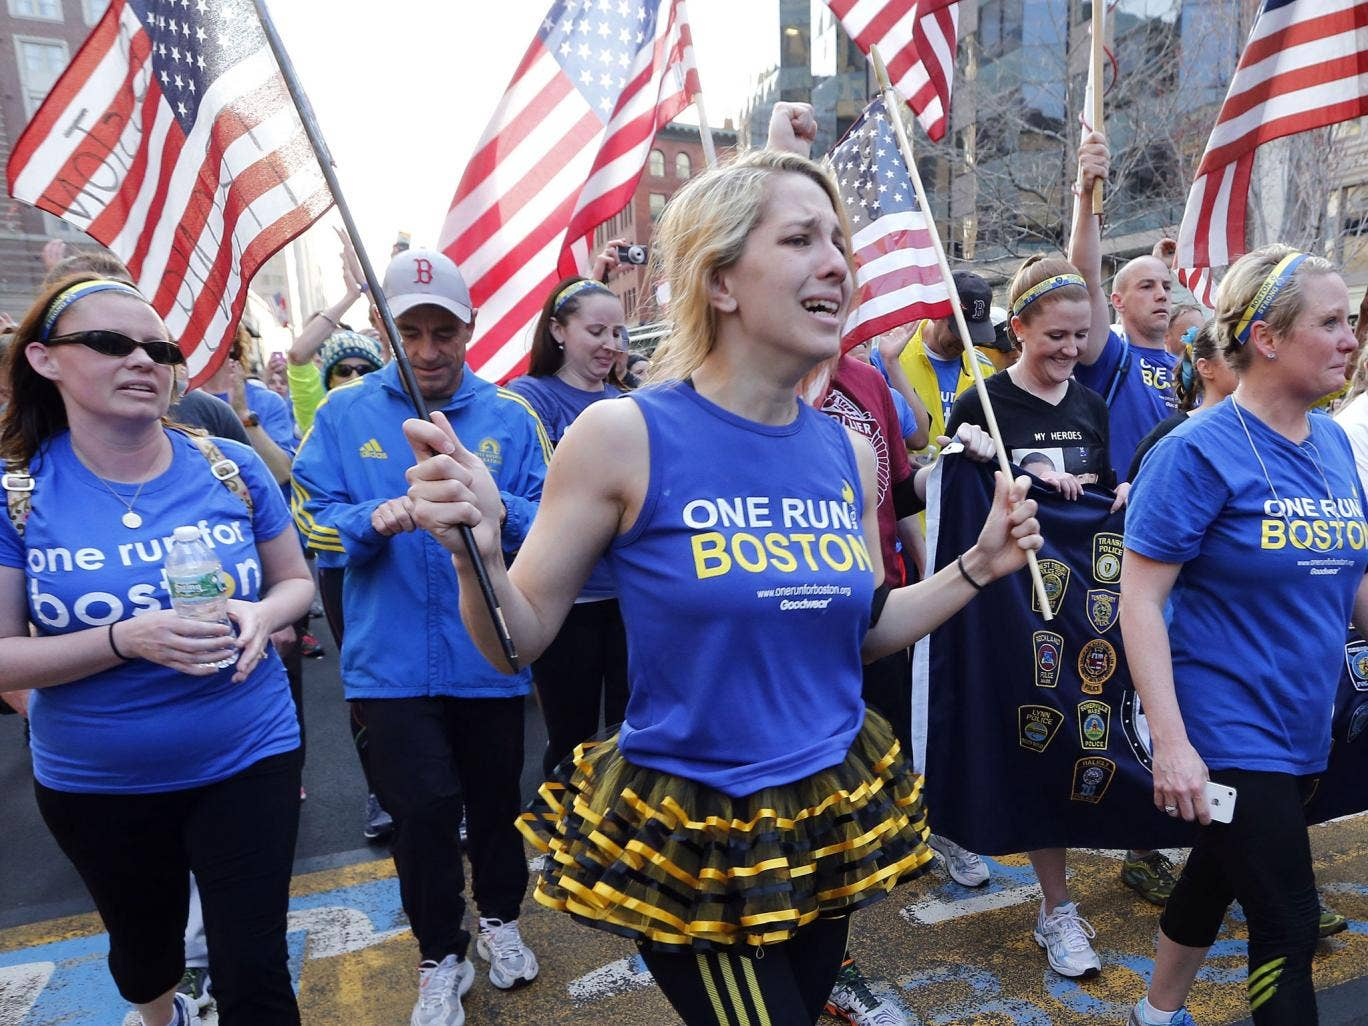 Boston Marathon bombing survivors, family members and supporters joined the relay runners for the final half-block to the finish